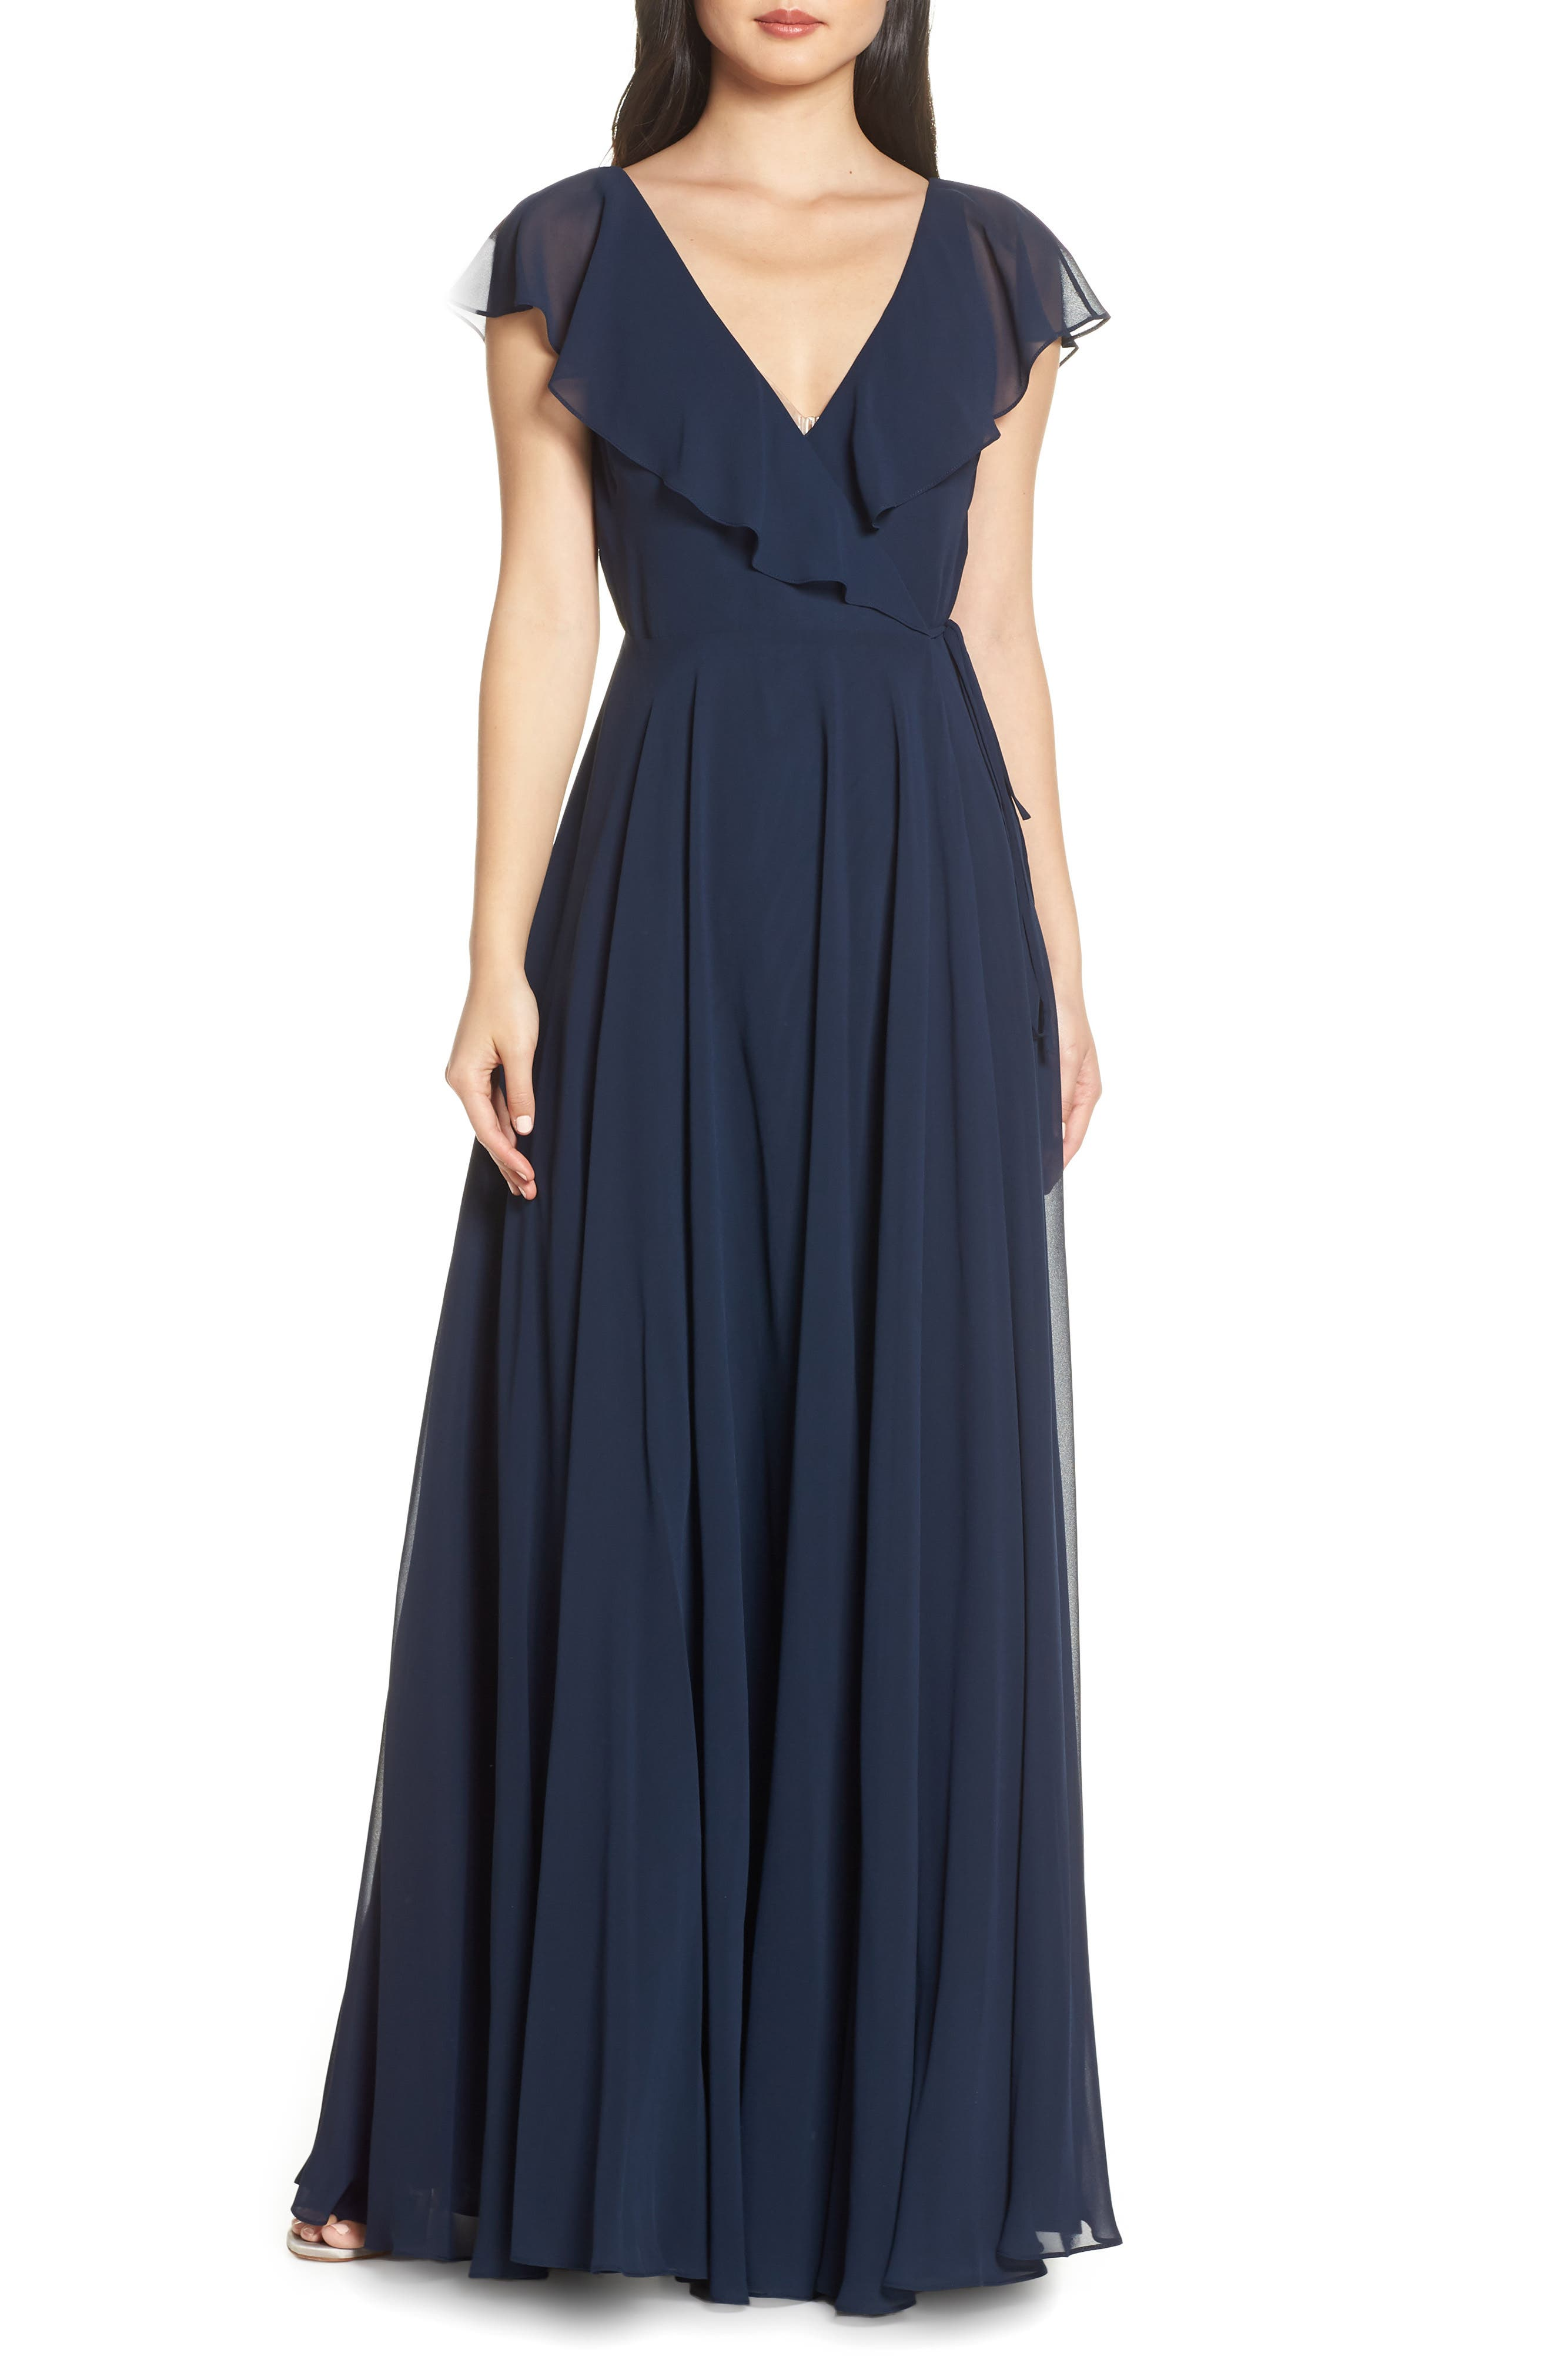 Jenny Yoo Faye Ruffle Wrap Chiffon Evening Dress, Blue